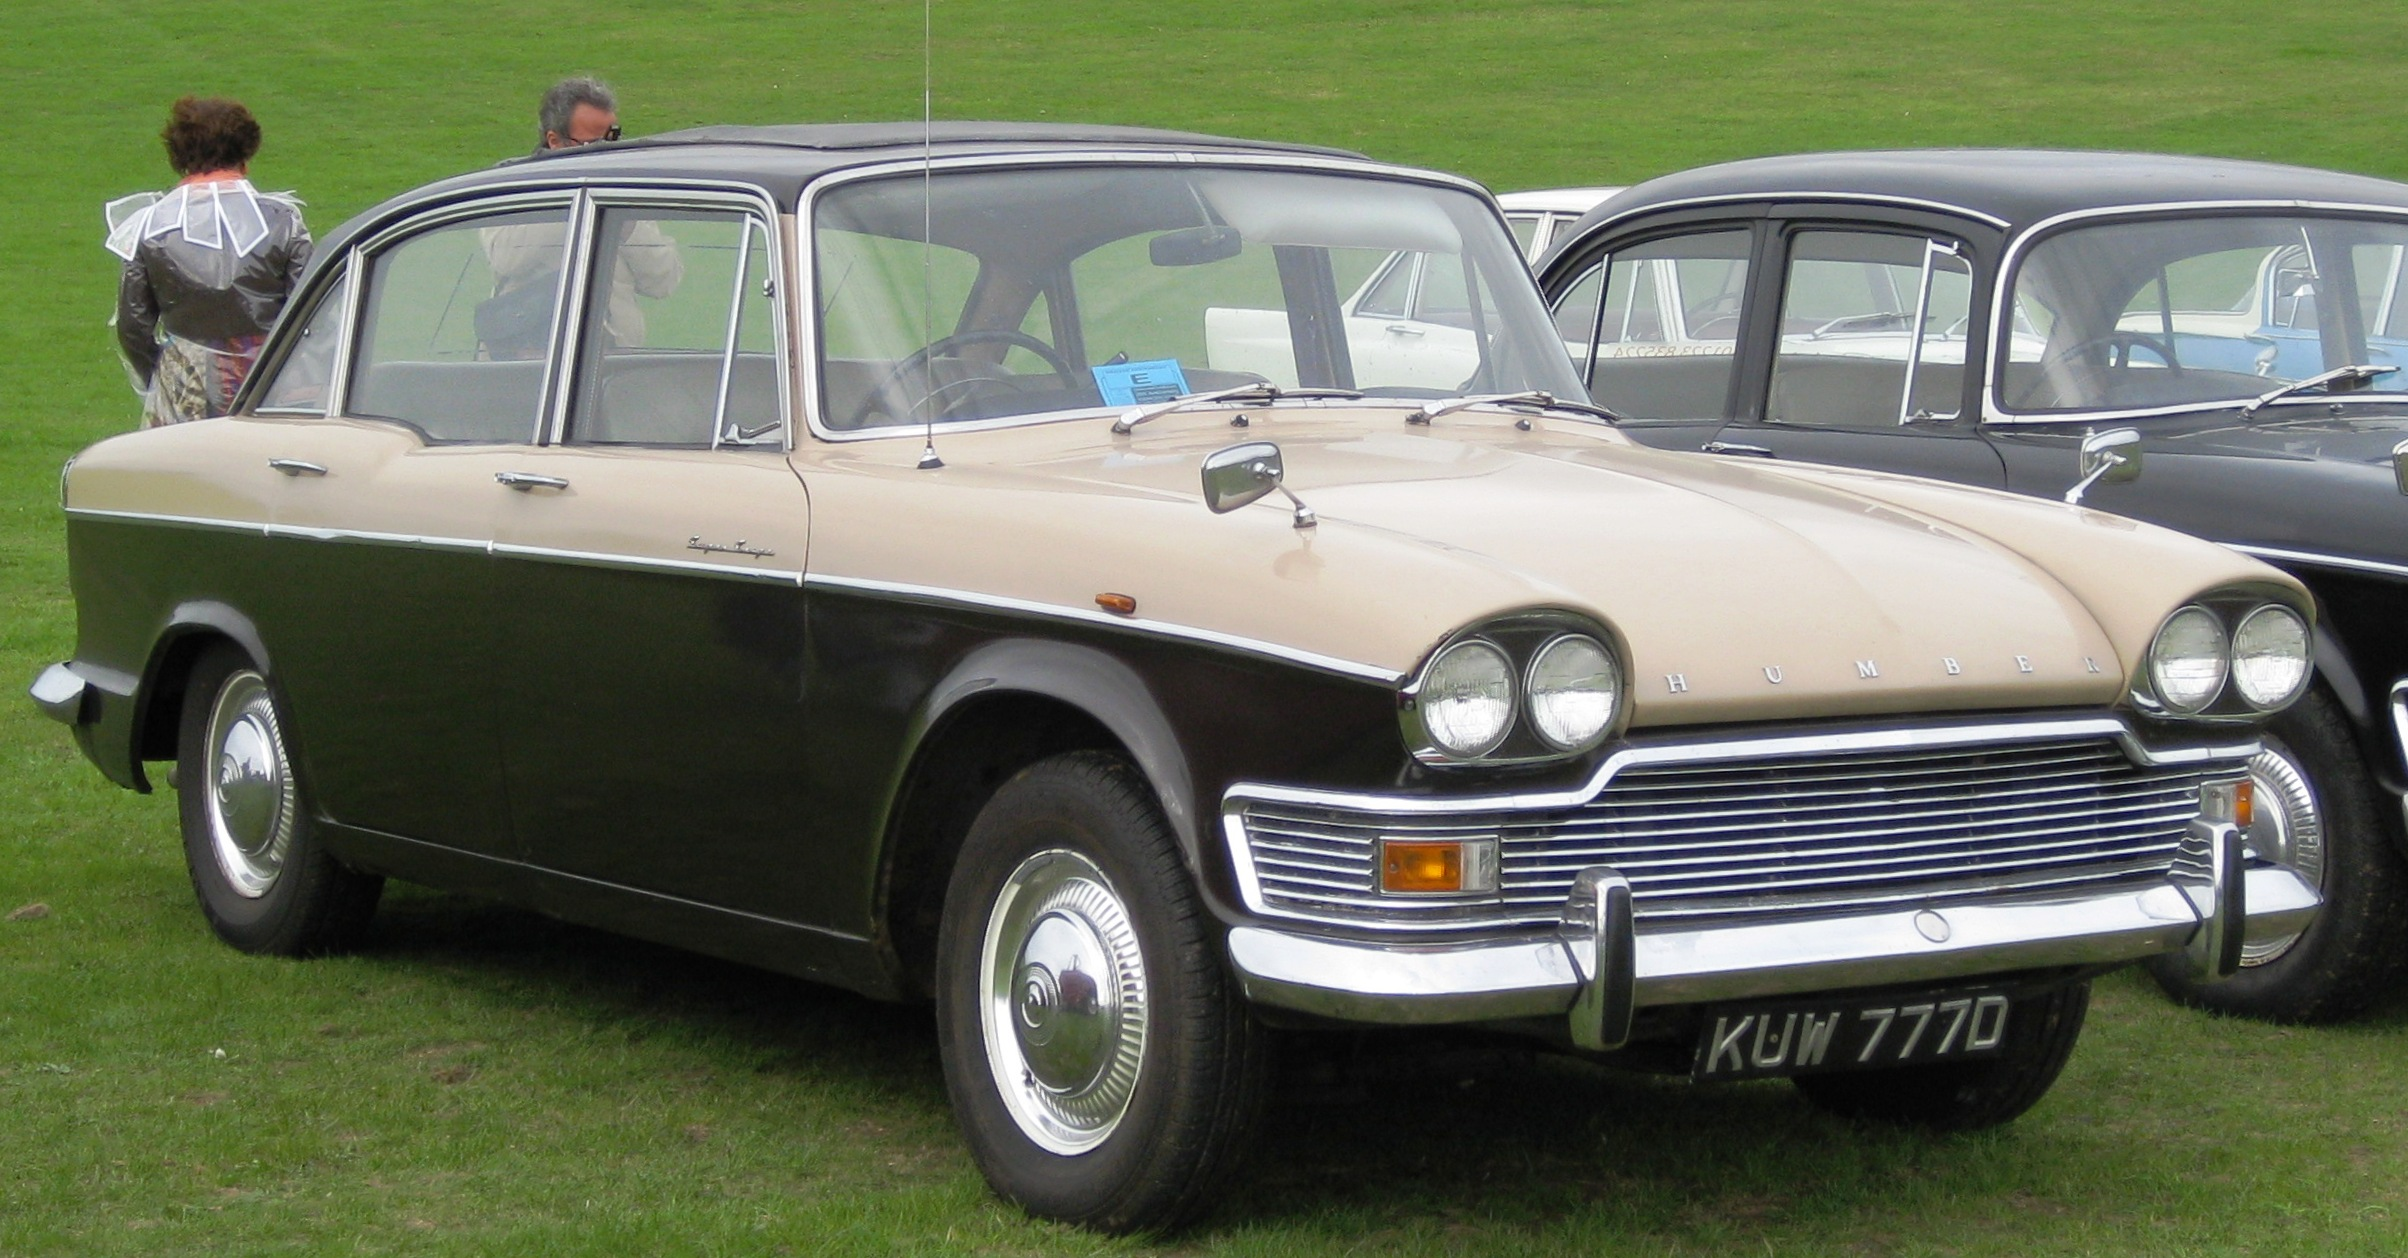 1965 Humber Super Snipe Series 5 Carsaddiction Com